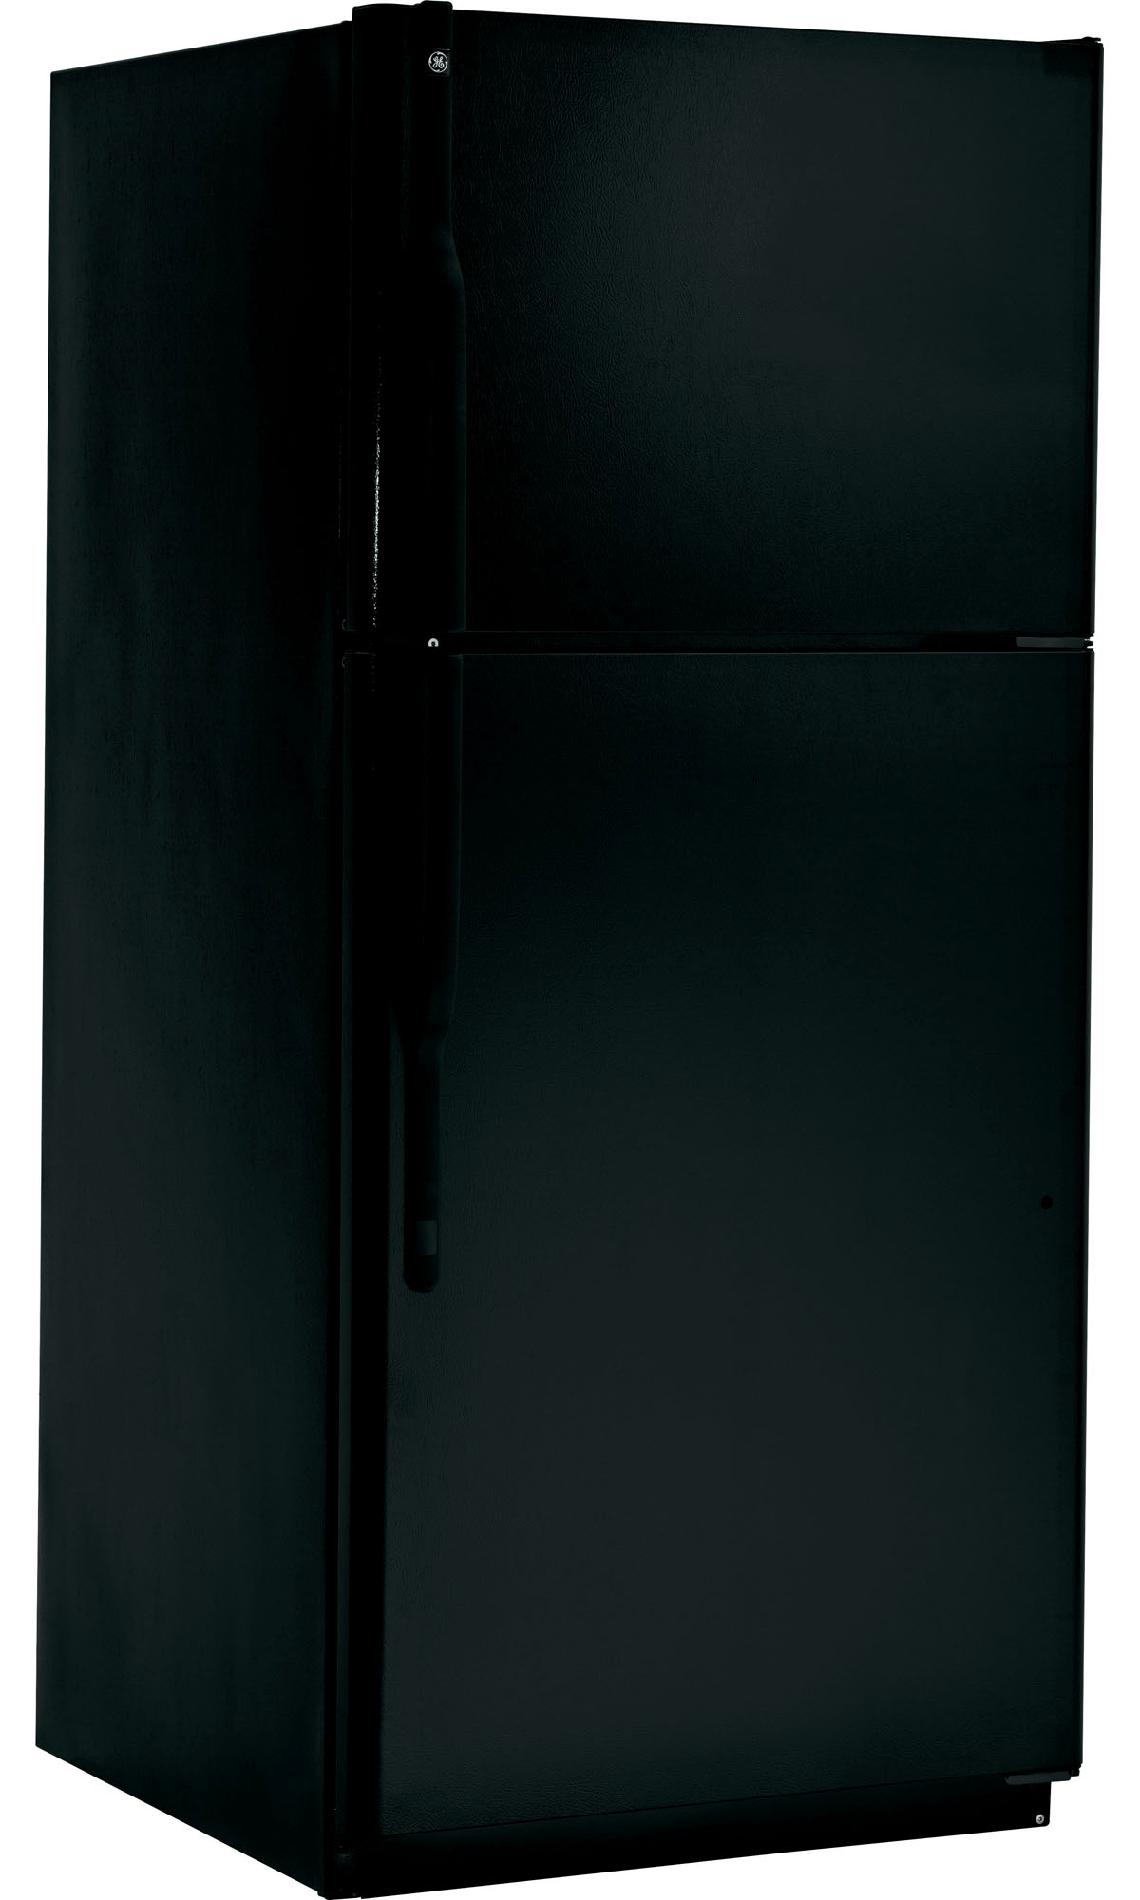 GE 18.0 cu. ft. Top-Freezer Refrigerator w/ Ice Maker - Black